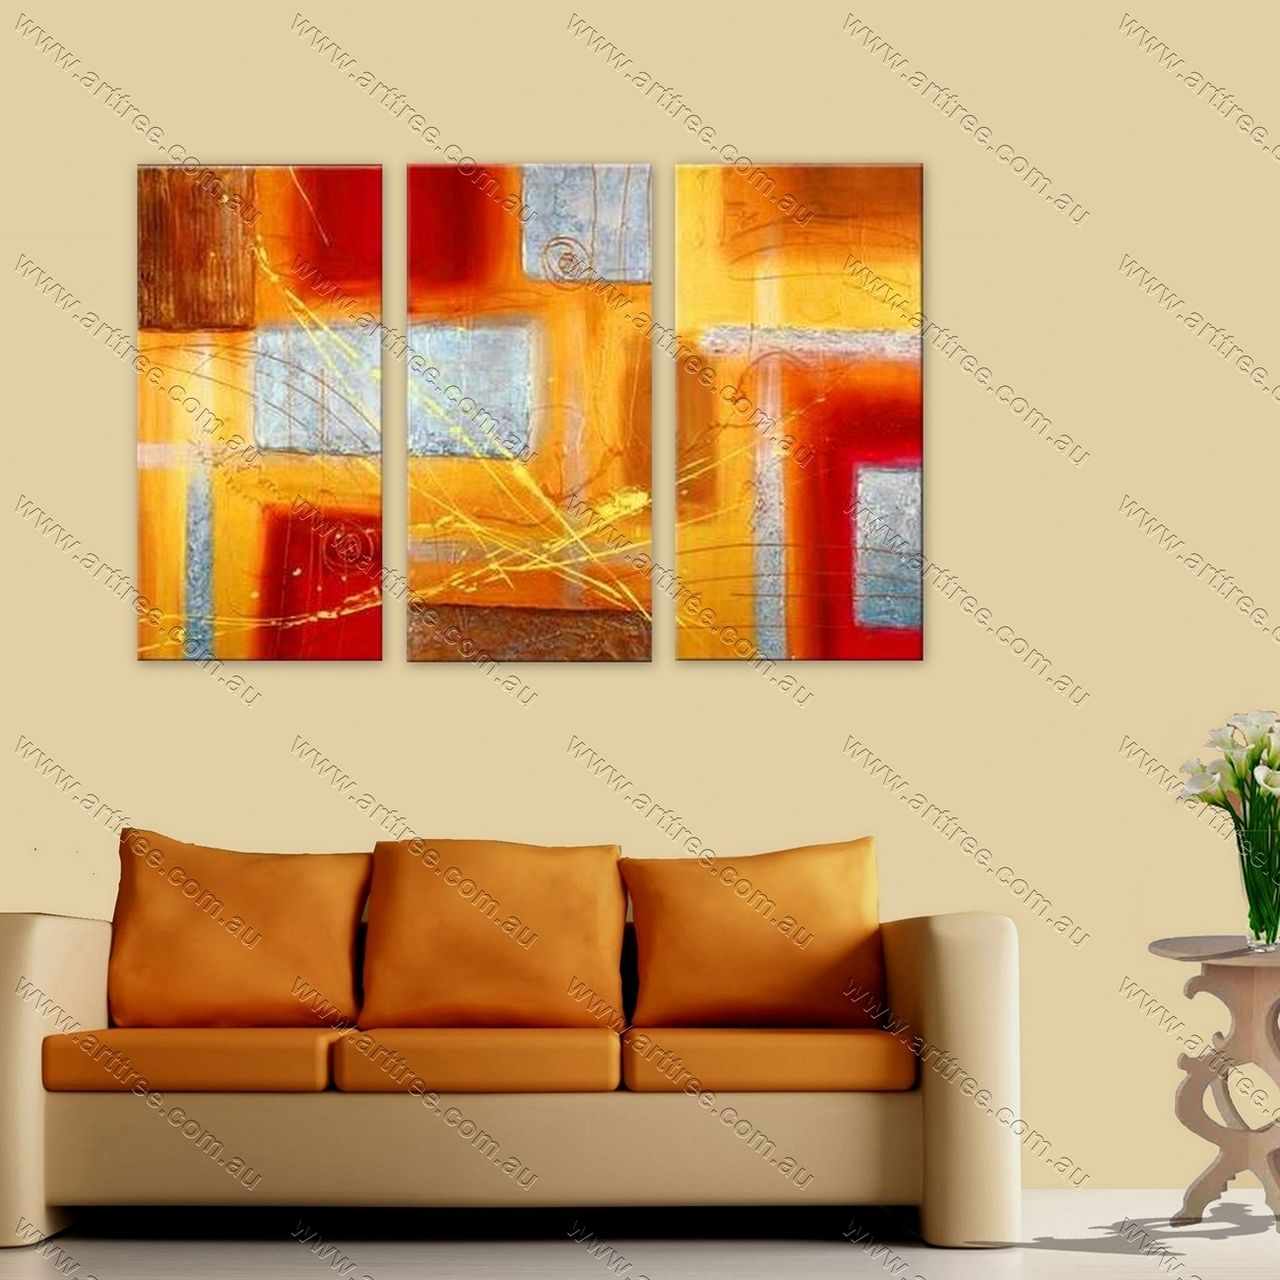 Big Square Patches Art | 3 Panel Canvas Painting | Pinterest | Wall ...